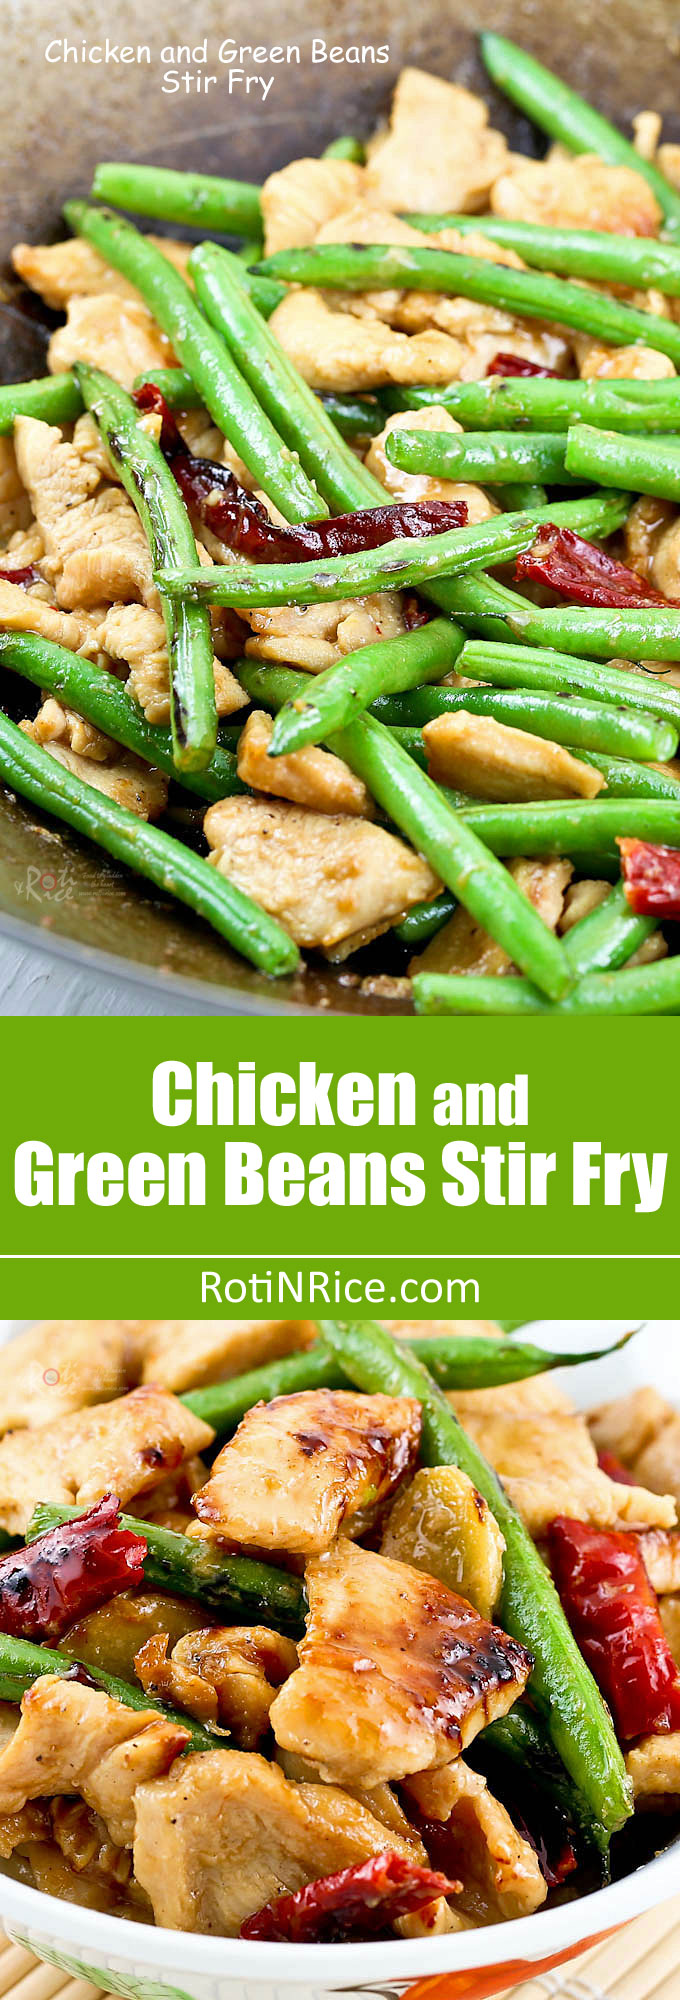 Less than 30 minutes Chicken and Green Beans Stir Fry with dried chilies for heat. Quick, easy, and tasty. Can't get better than that! | RotiNRice.com